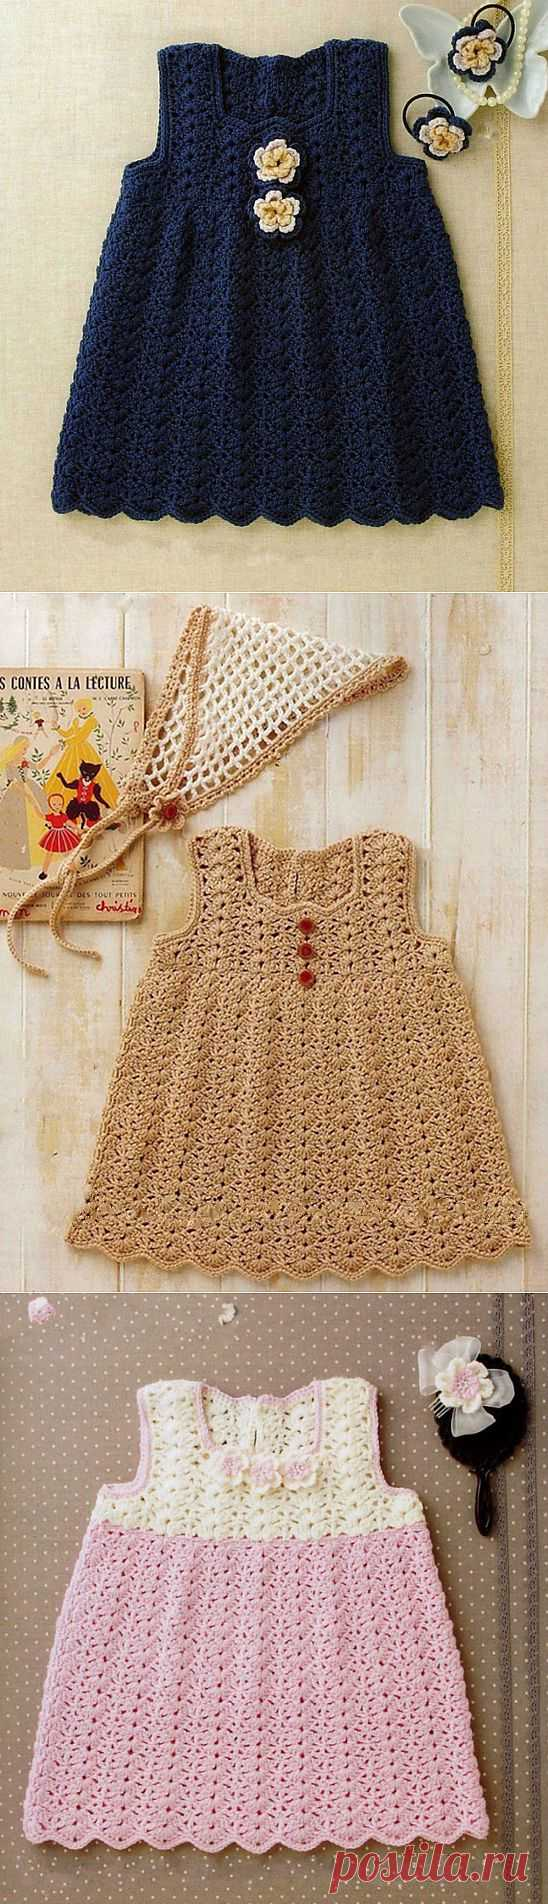 Summer children's dress. Simple effective pattern + color (any).